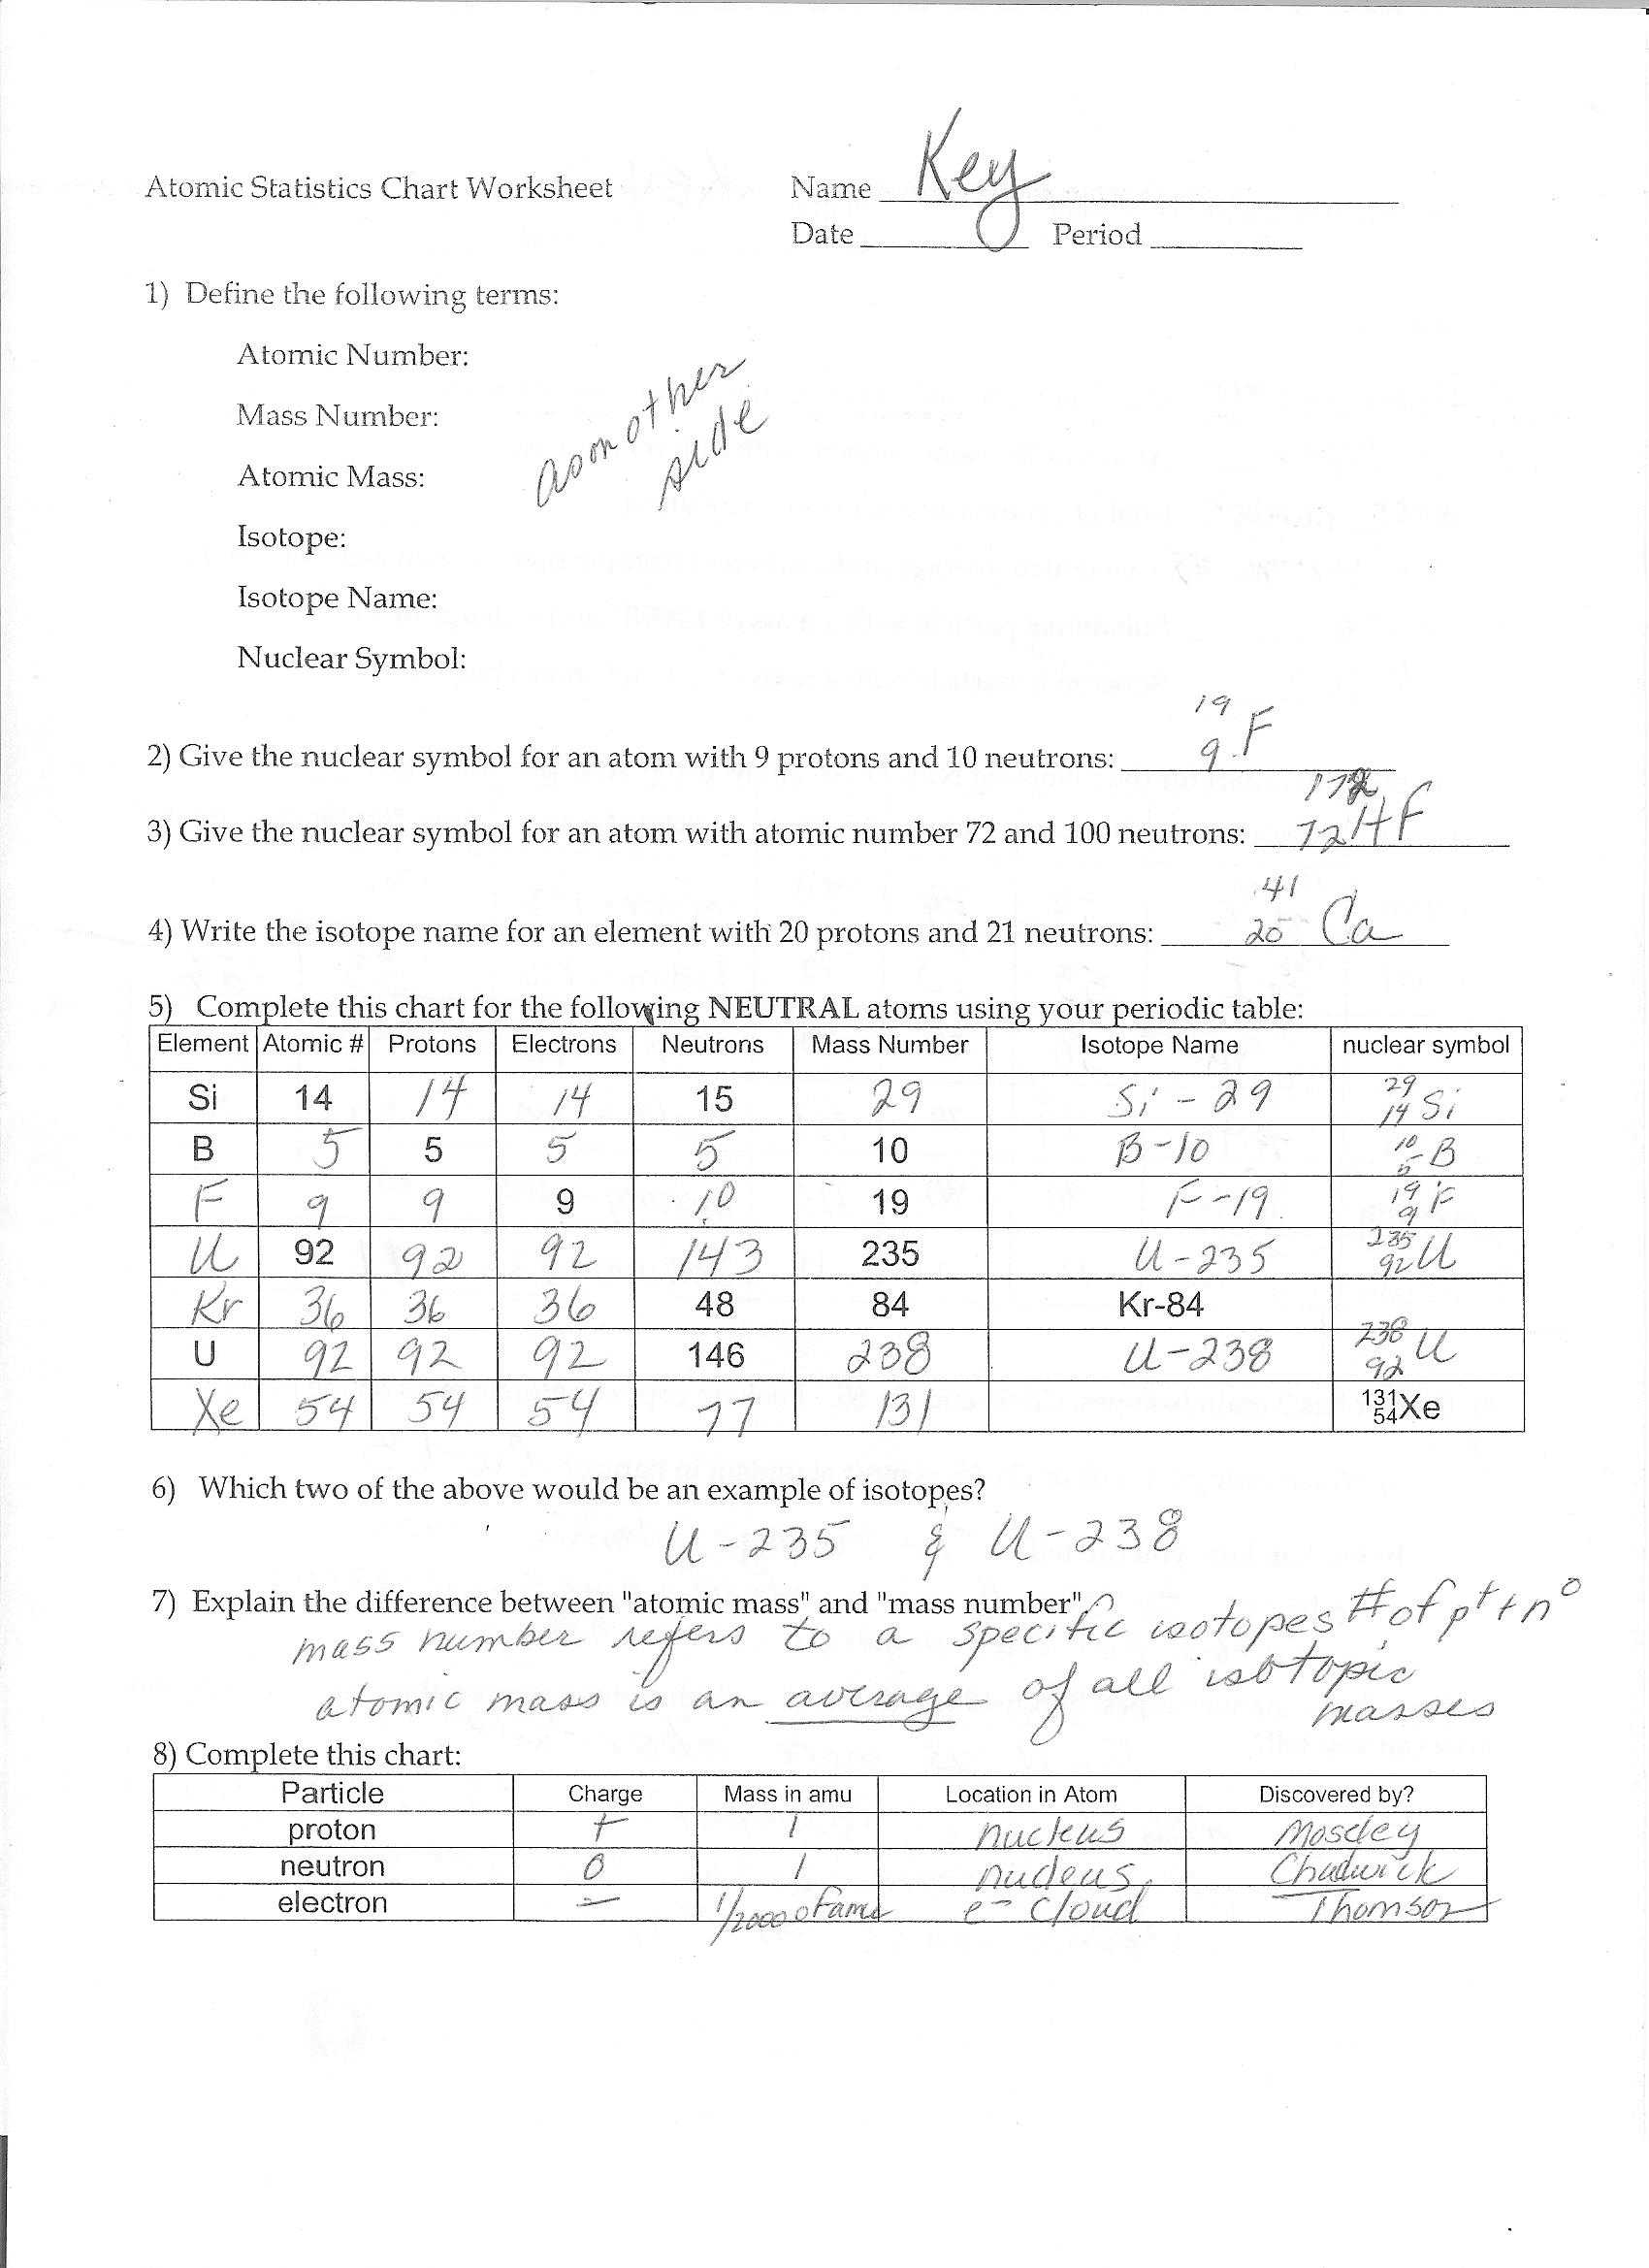 Worksheet 10 Metallic Bonds Answers and Ionic Bonds ...